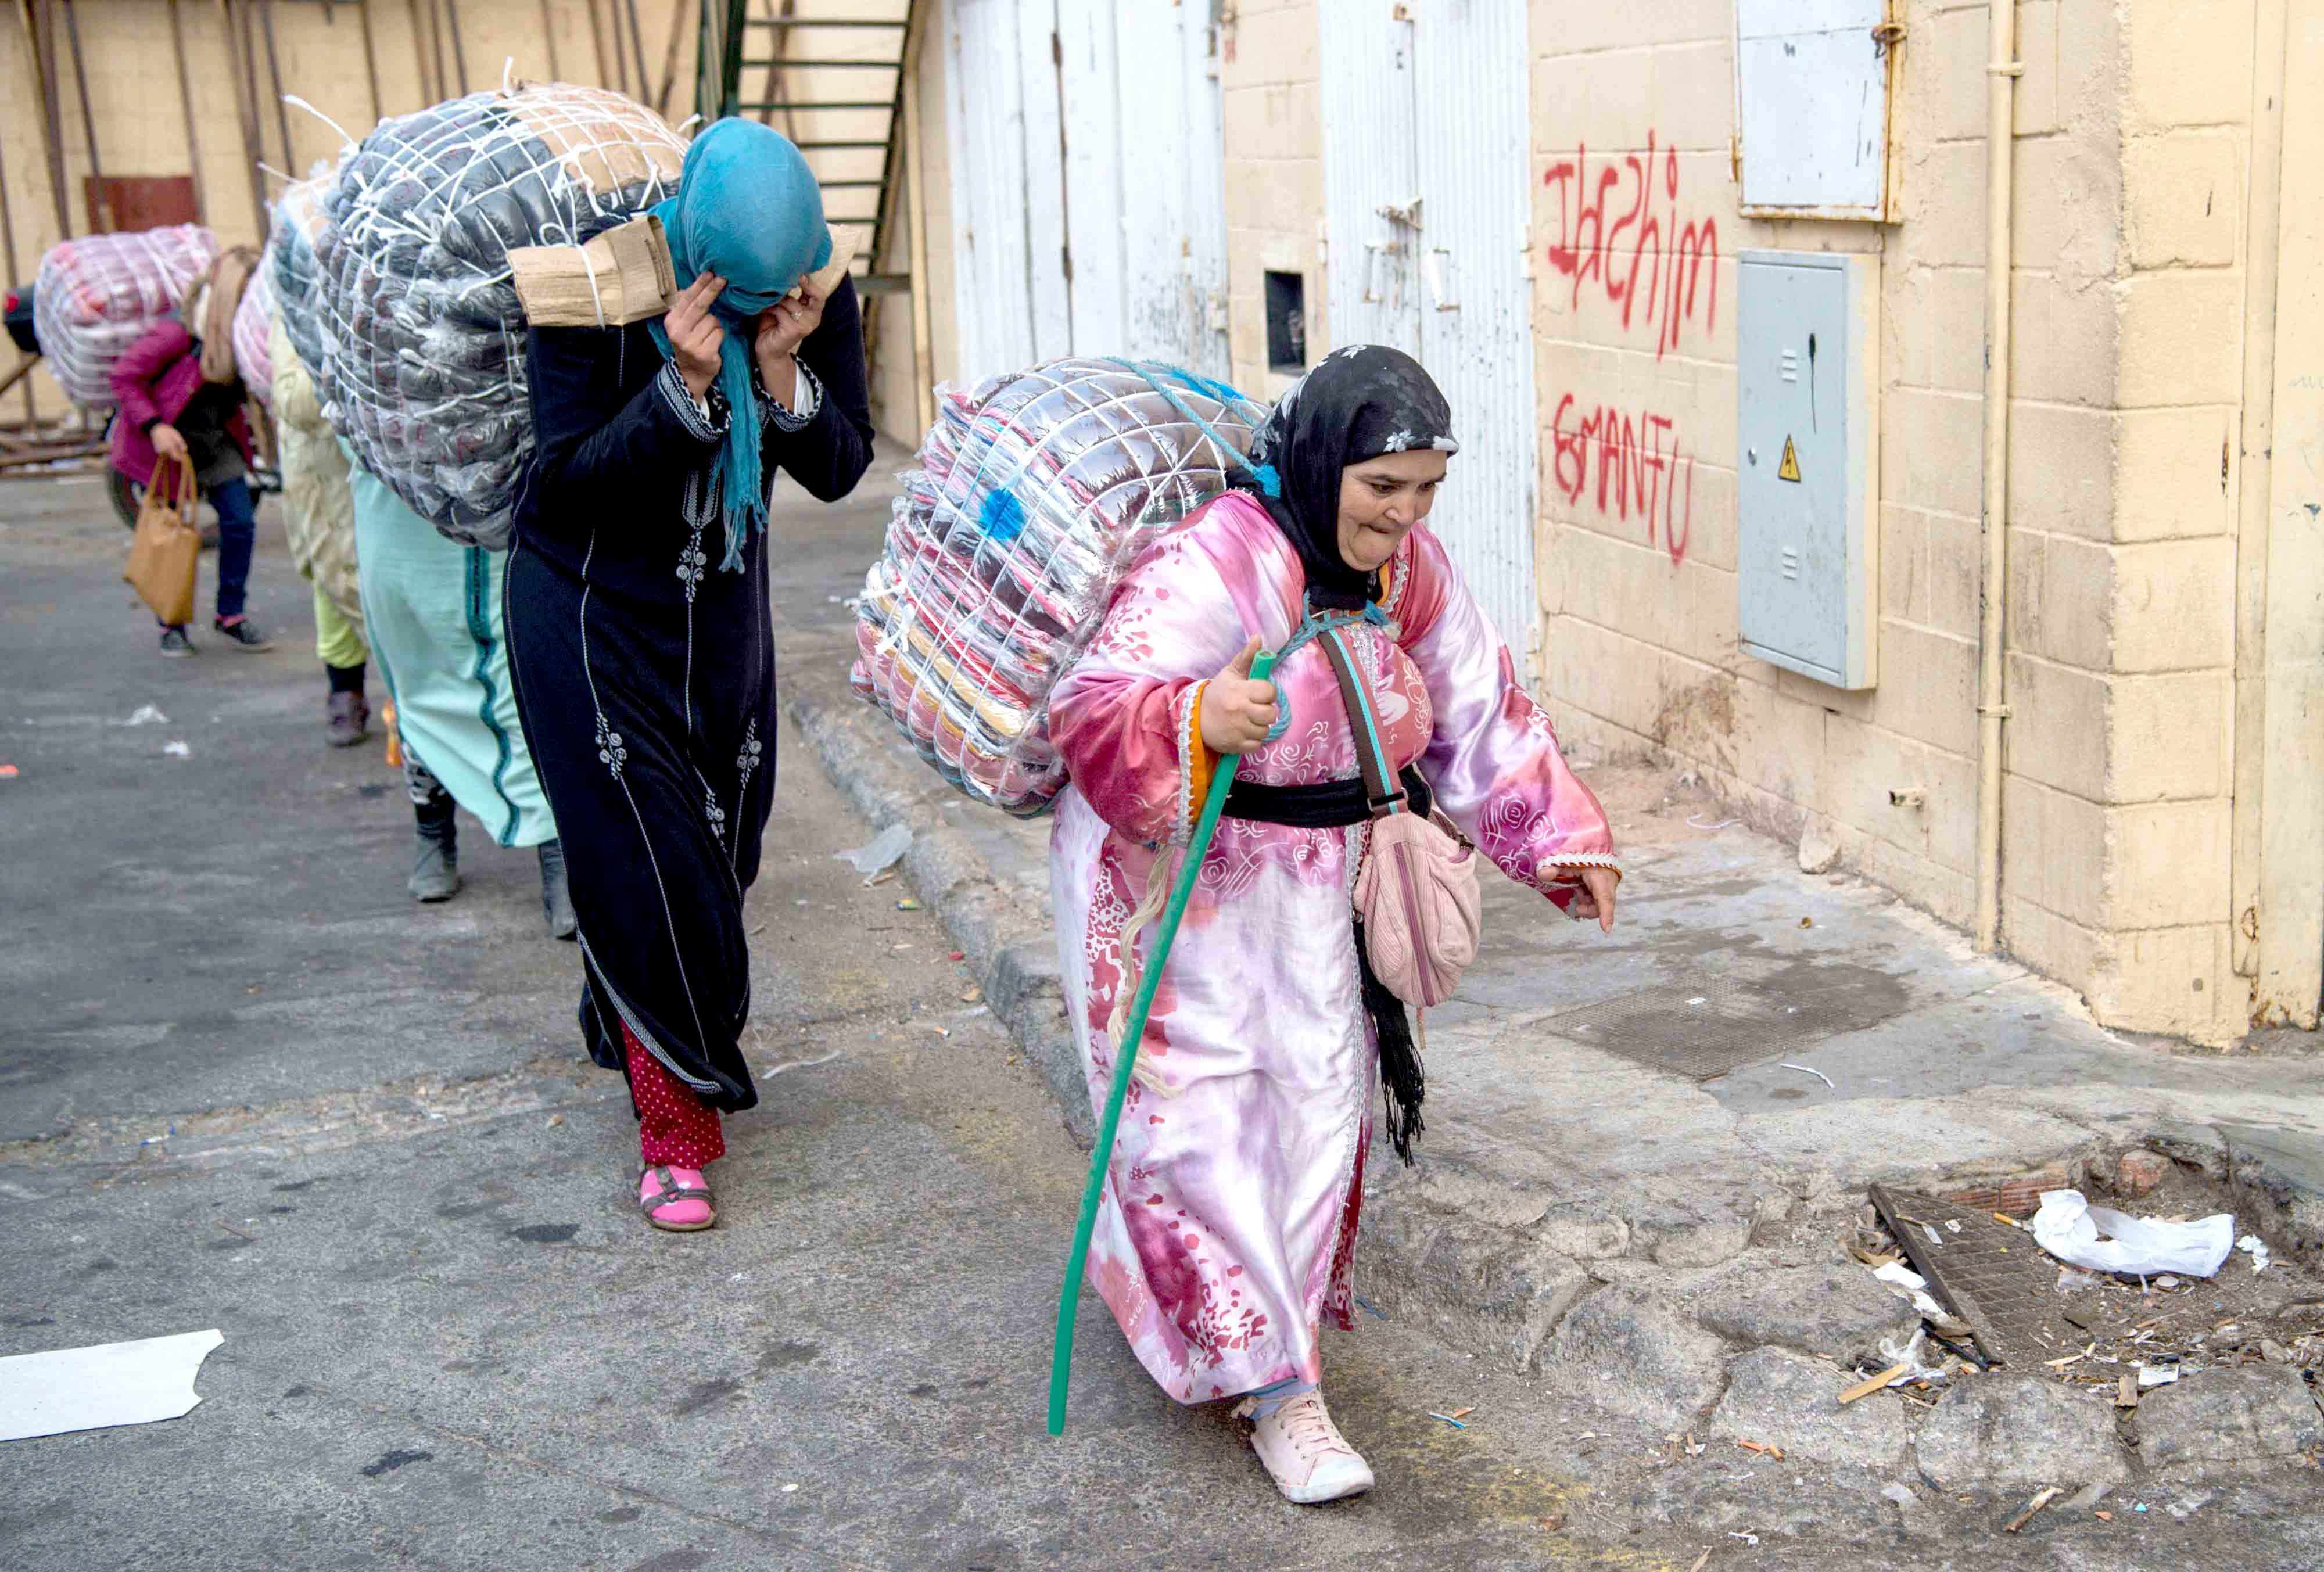 Moroccan women porters carry bundles of goods on their backs on their way from the Spanish exclave of Ceuta to Morocco, on September 20. (AFP)